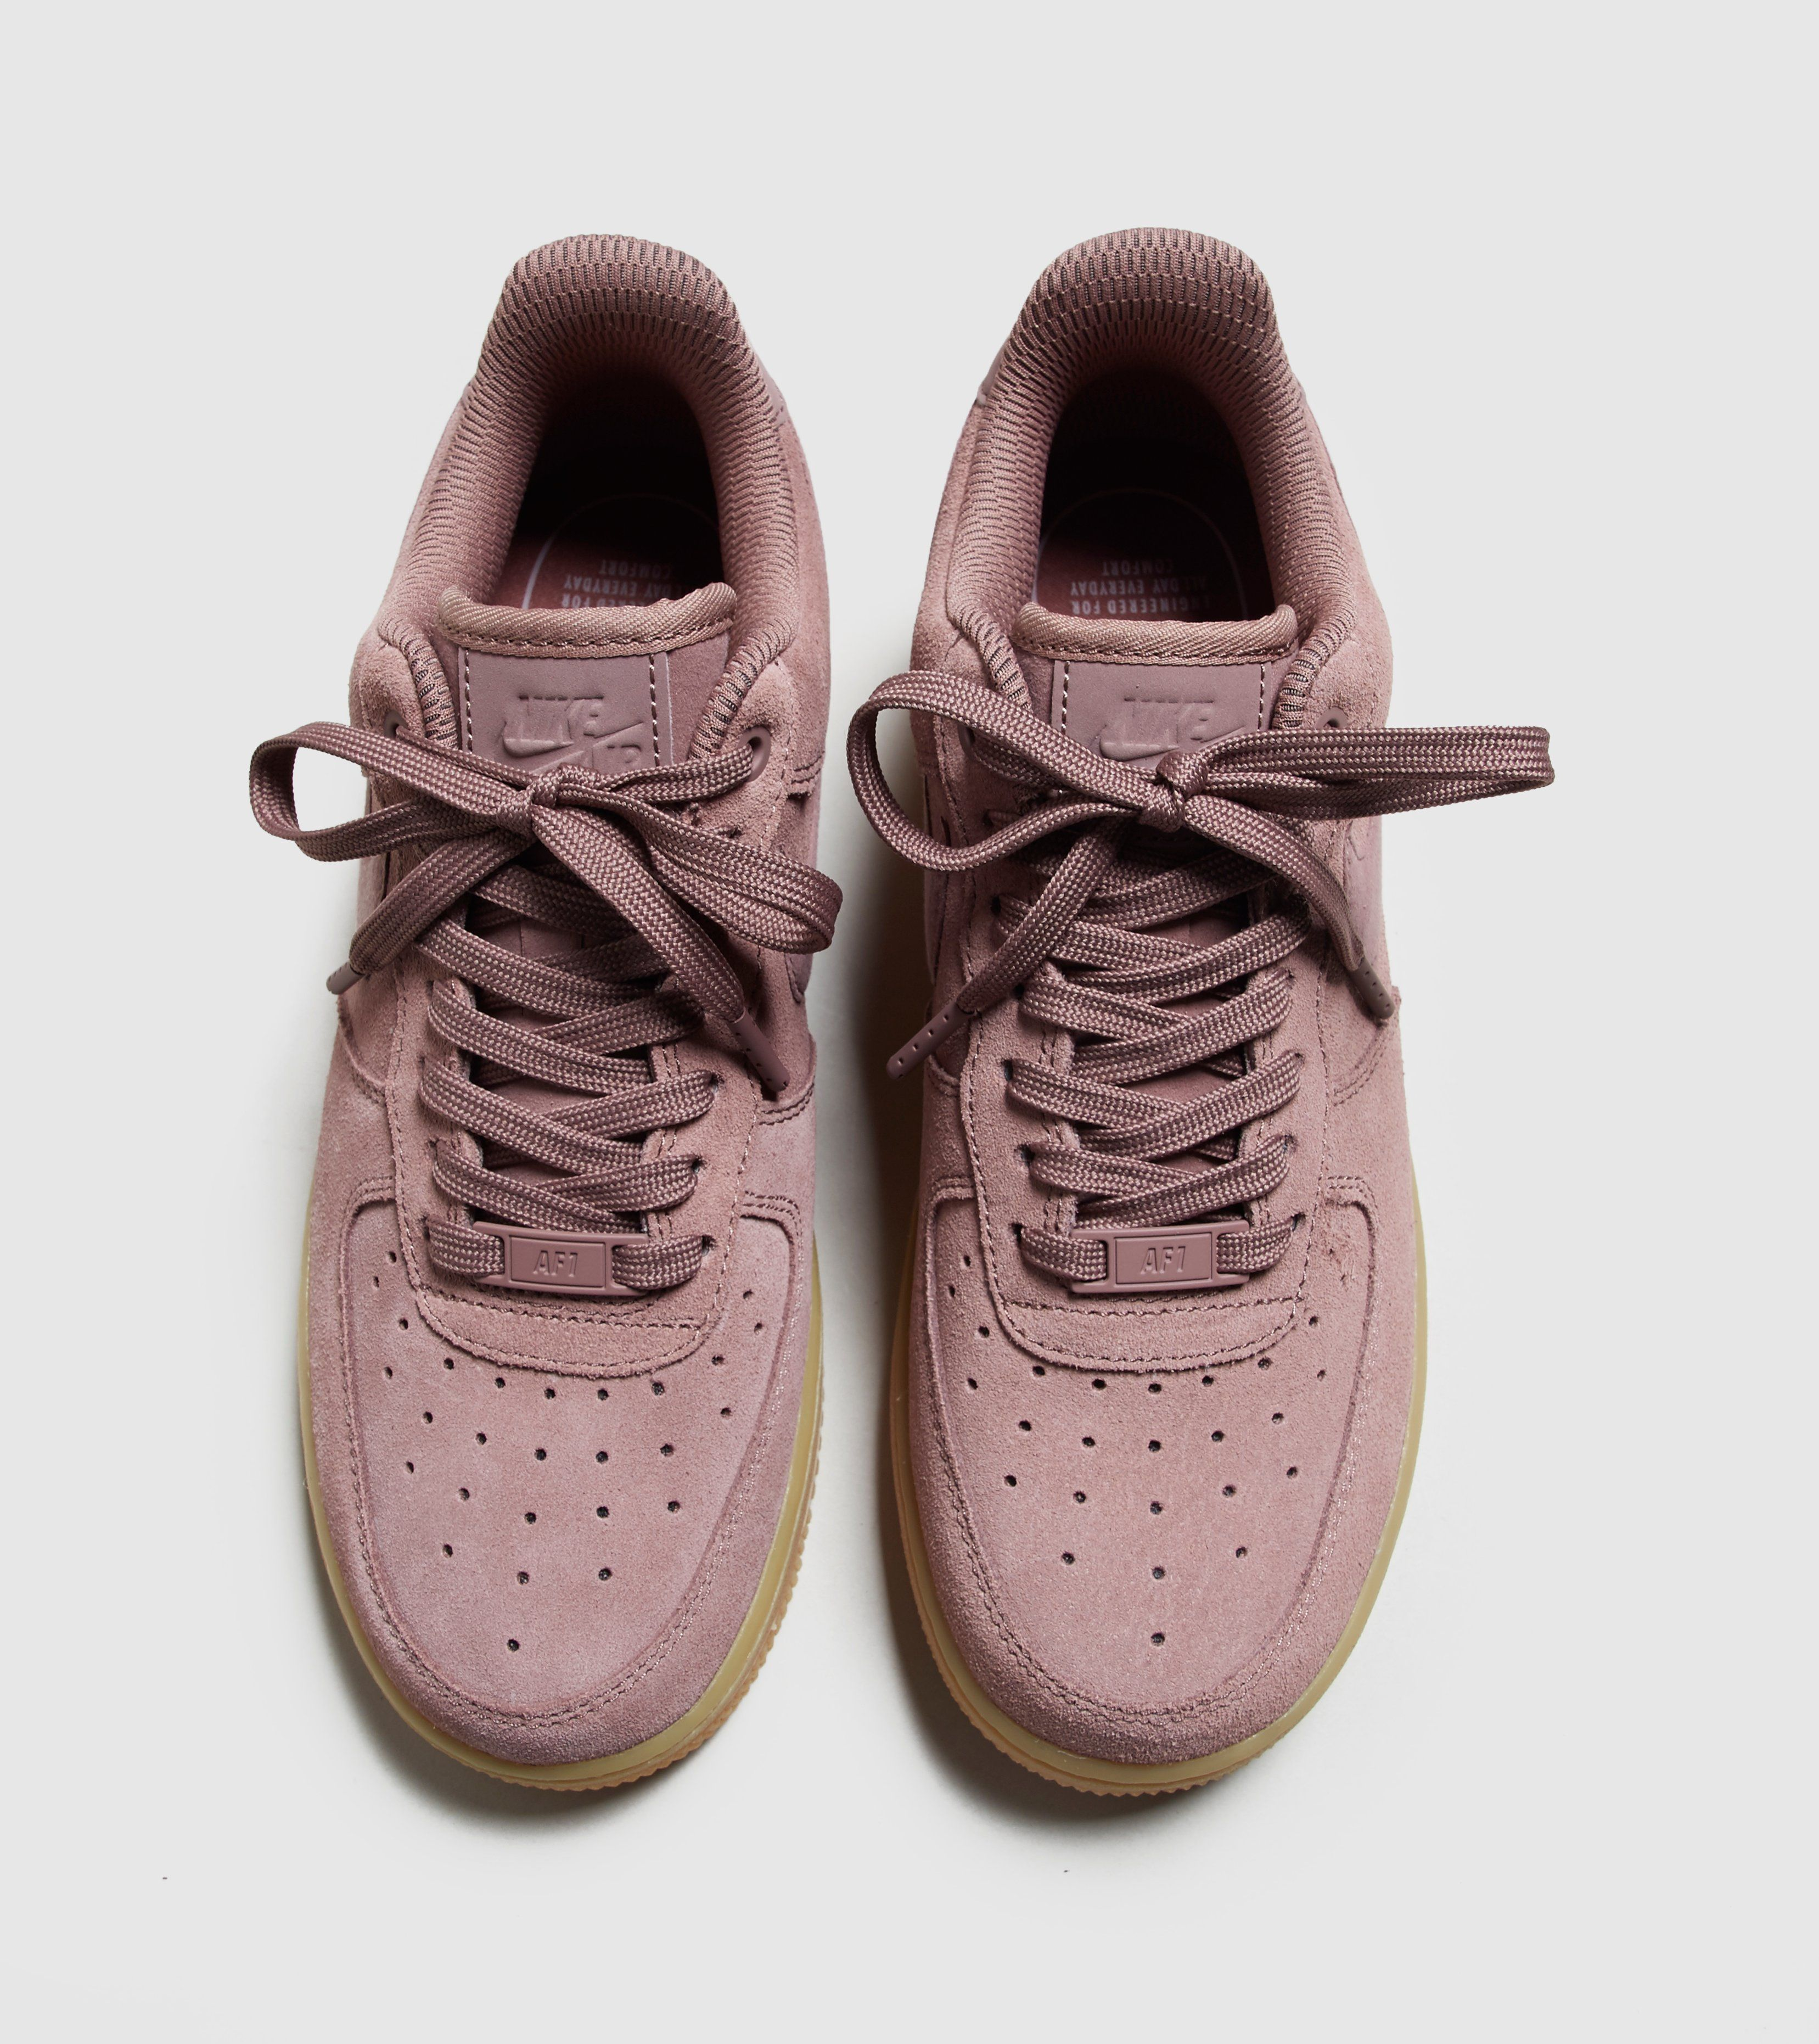 Nike Air Force 1 '07 SE Suede Women's